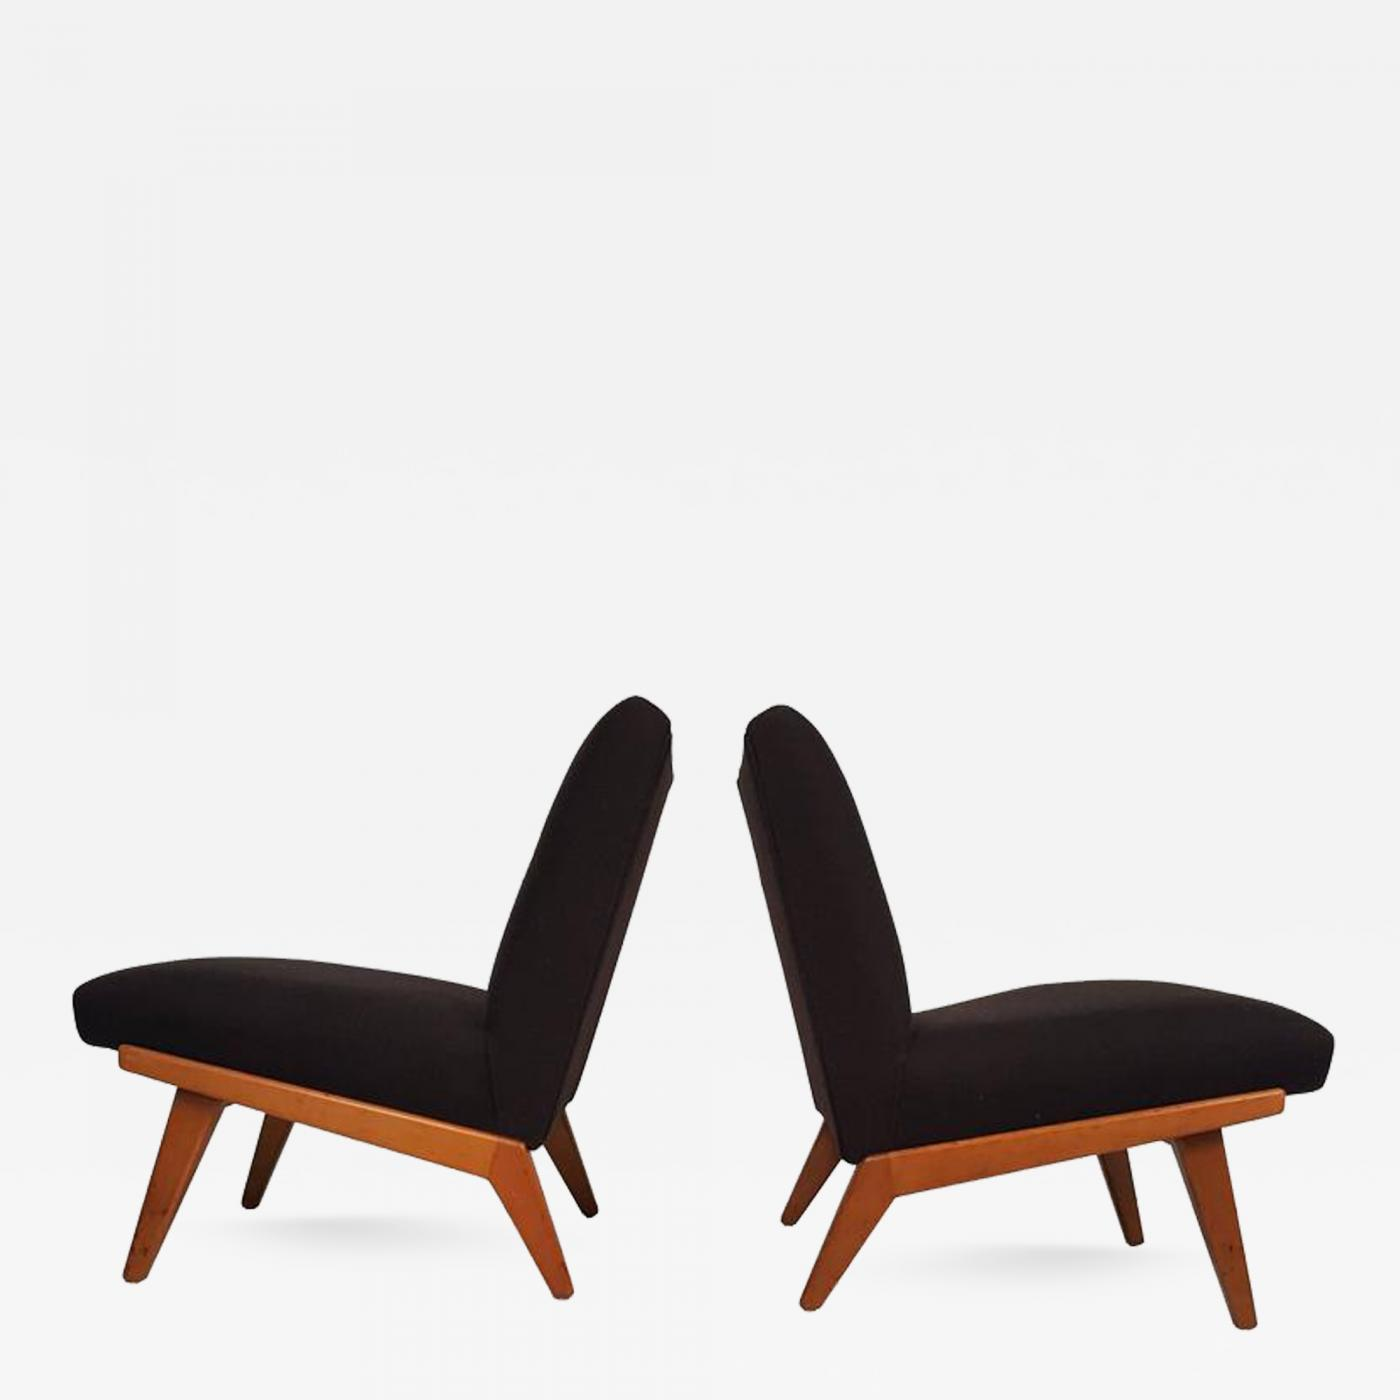 jens risom jens risom slipper lounge chairs for h g knoll products